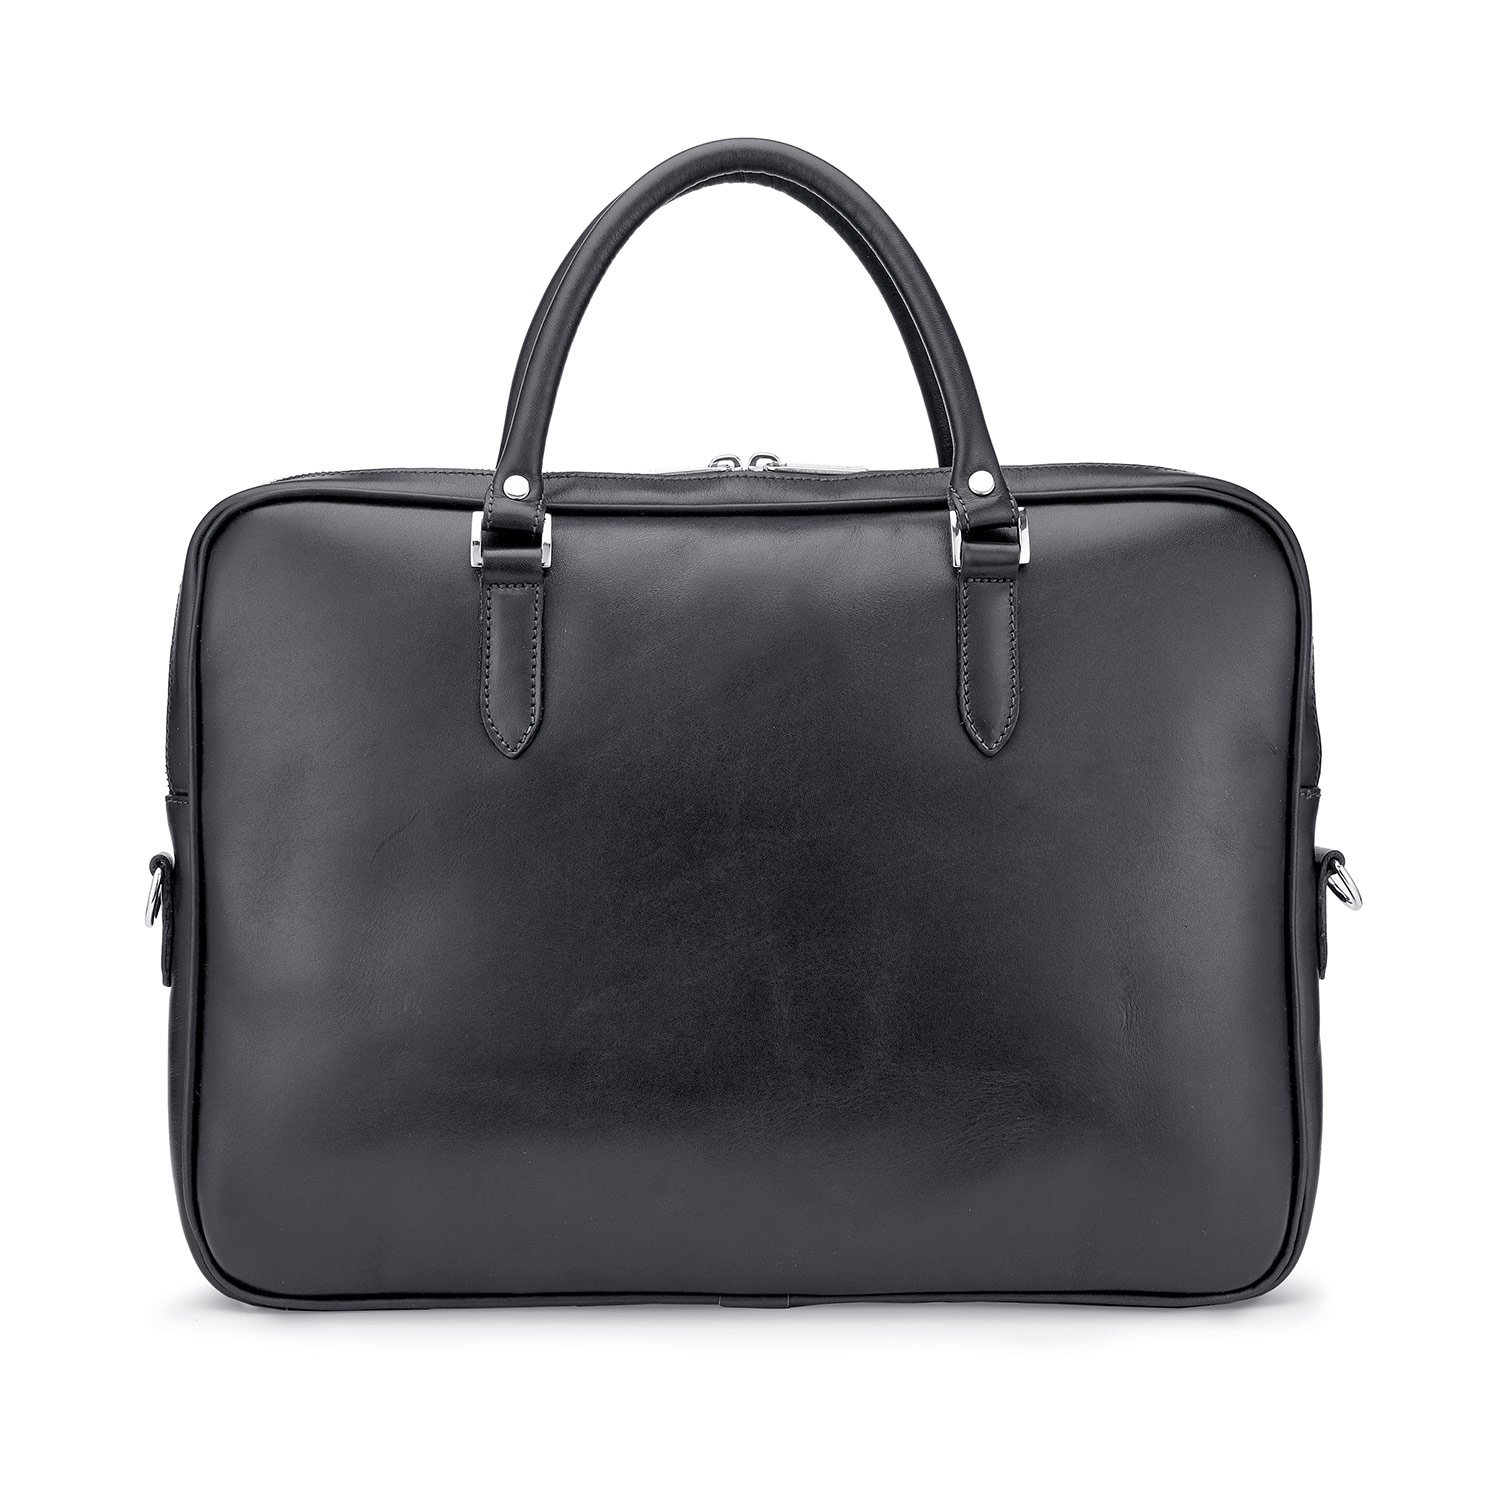 Tusting Piccadilly Leather Briefcase in Black Rear